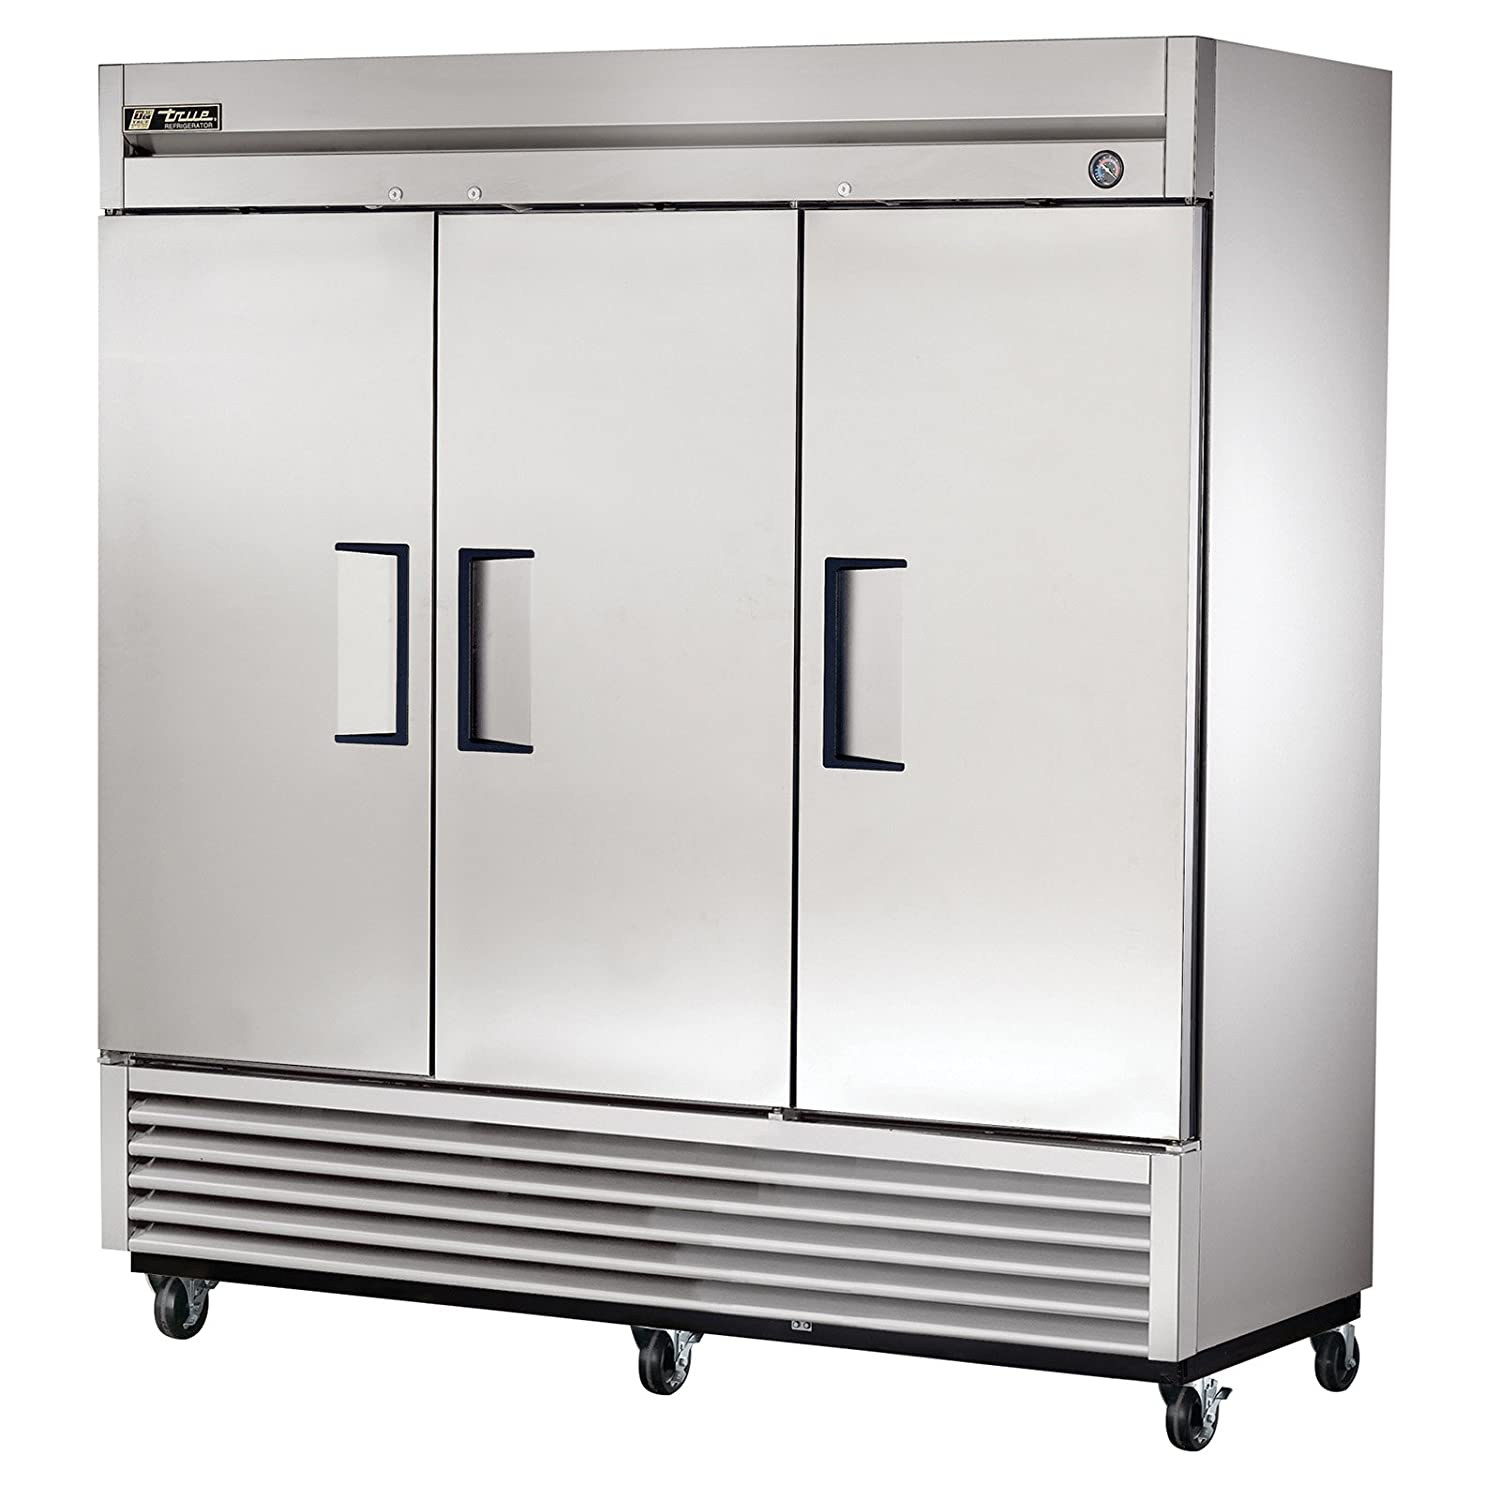 Commercial refrigerator for home use - Commercial Refrigerator For Home Use 39